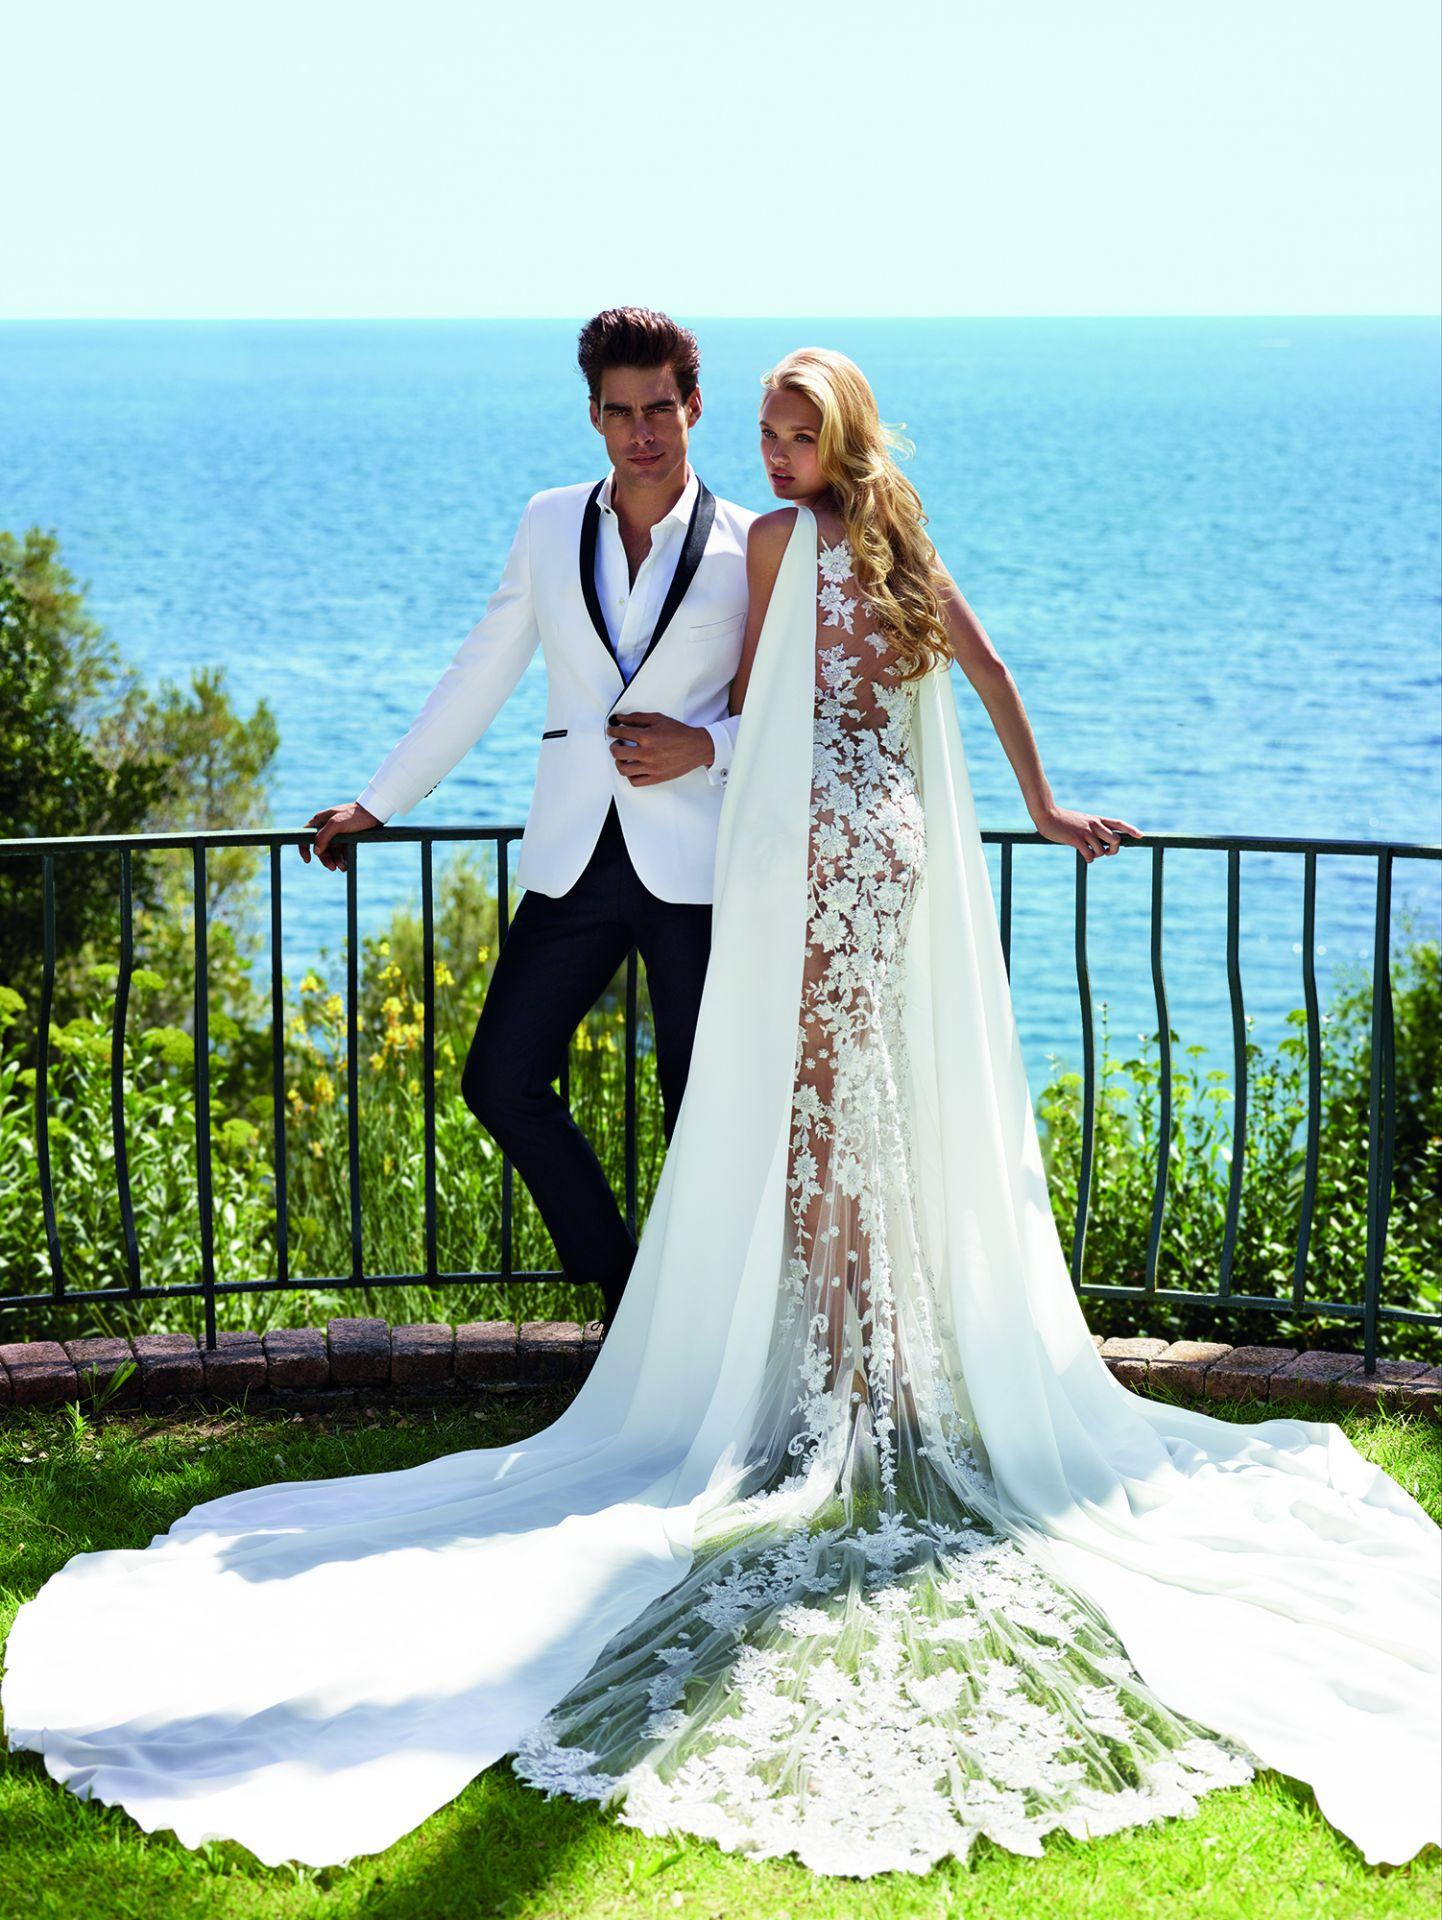 """Will You Marry Me?"" La espectacular campaña de Pronovias con Jon Kortajarena y Romee Strijd, la Top del momento"